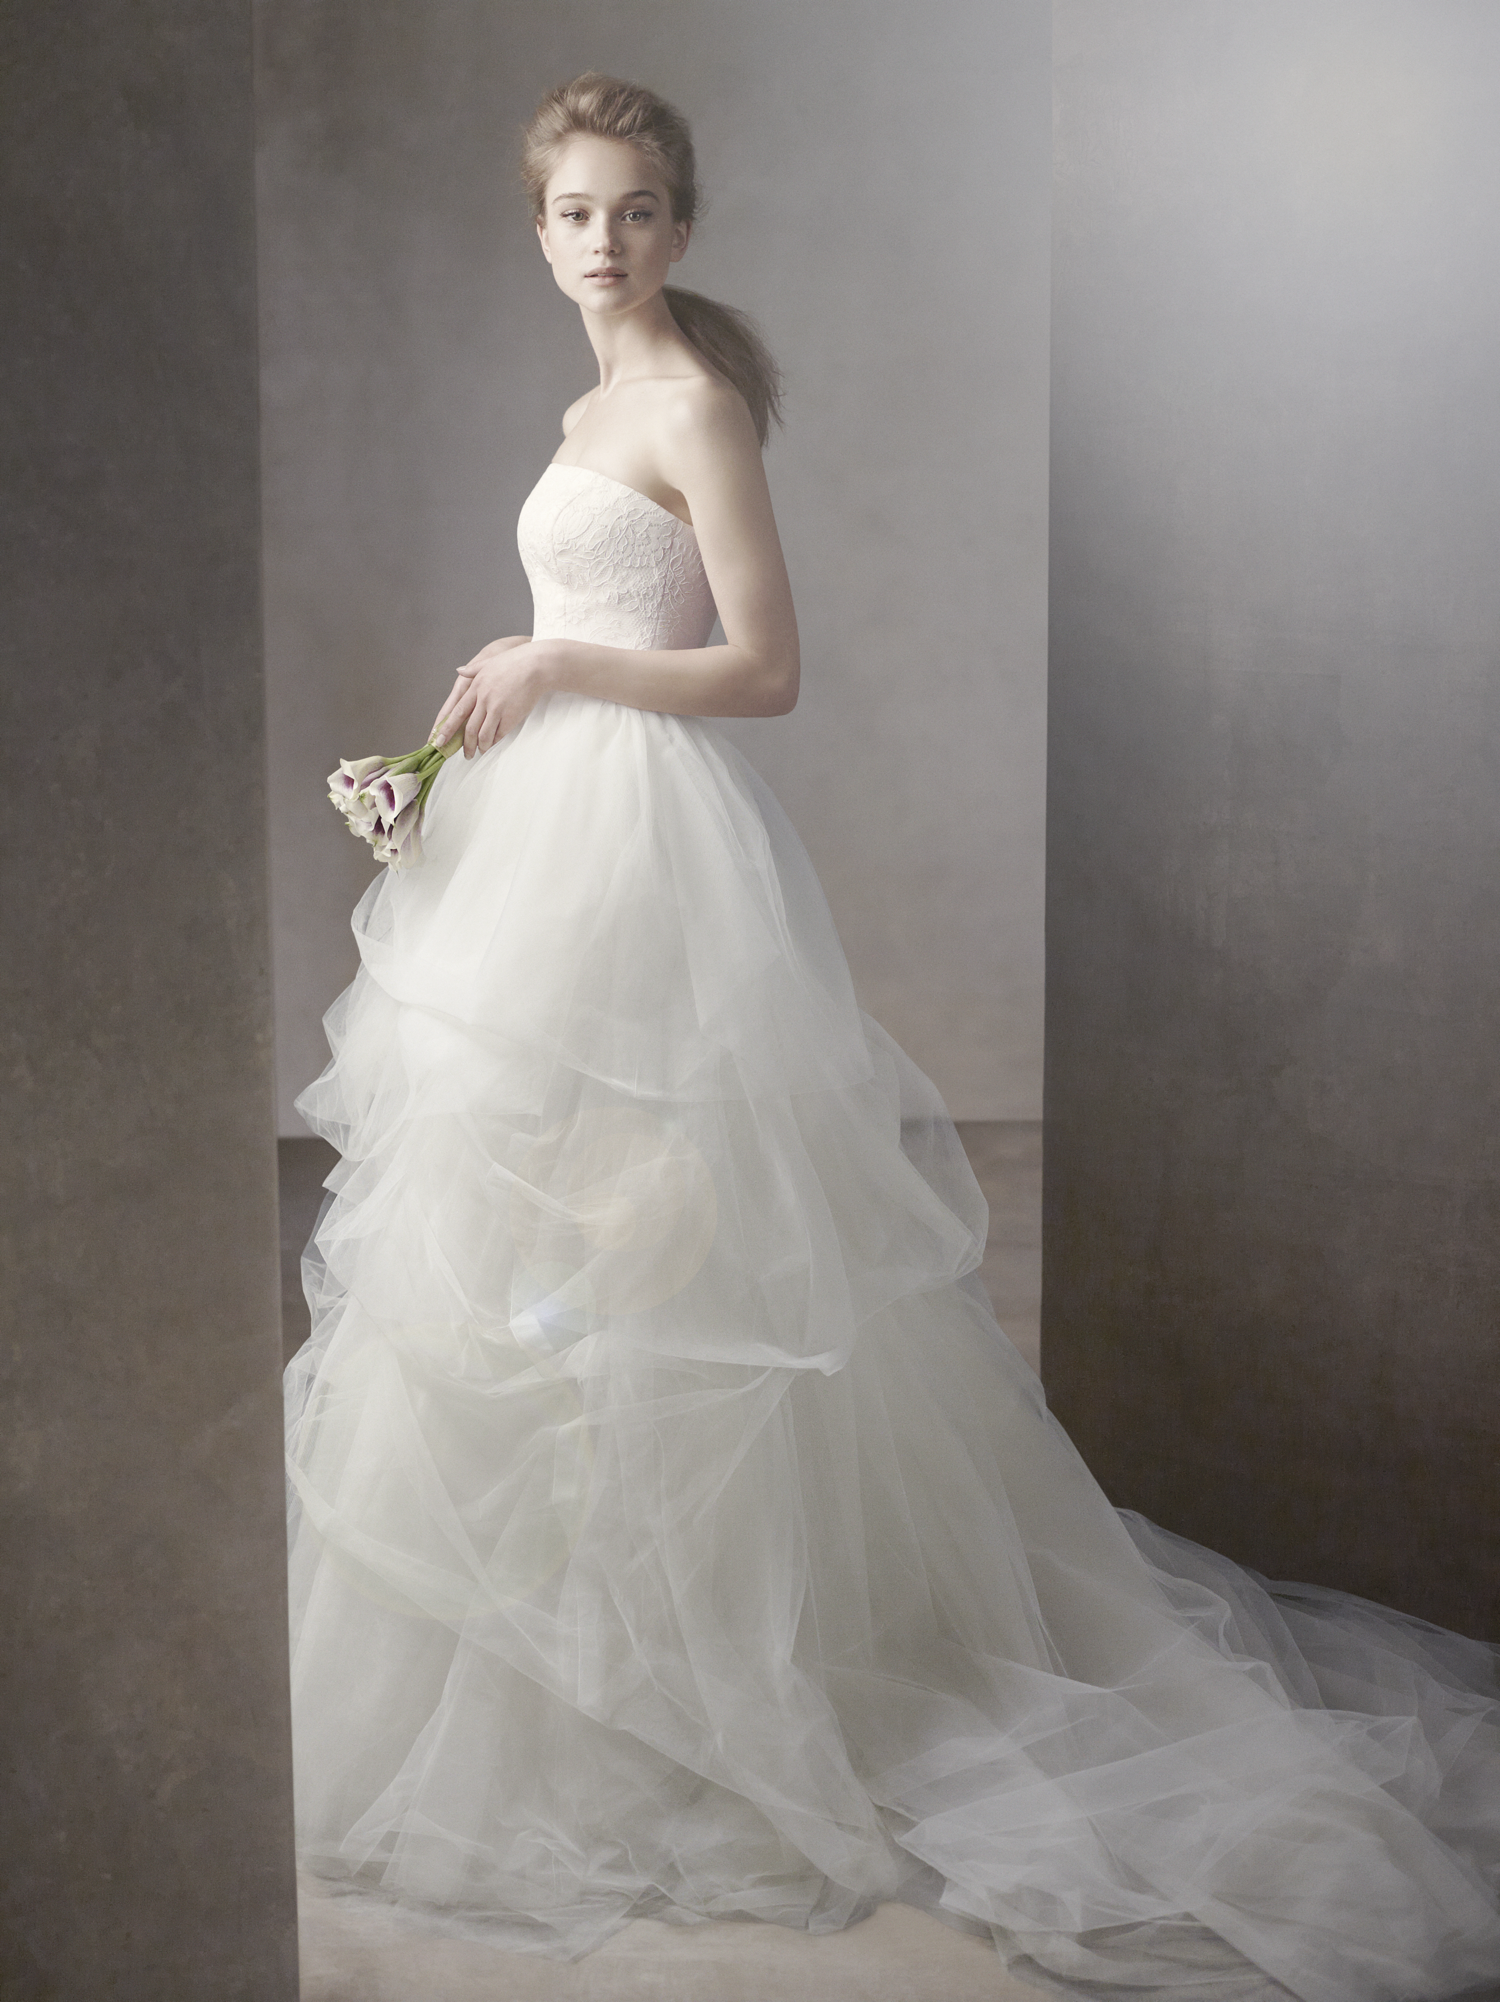 Wedding dress business i love vera wang wedding dresses for Where to buy vera wang wedding dresses